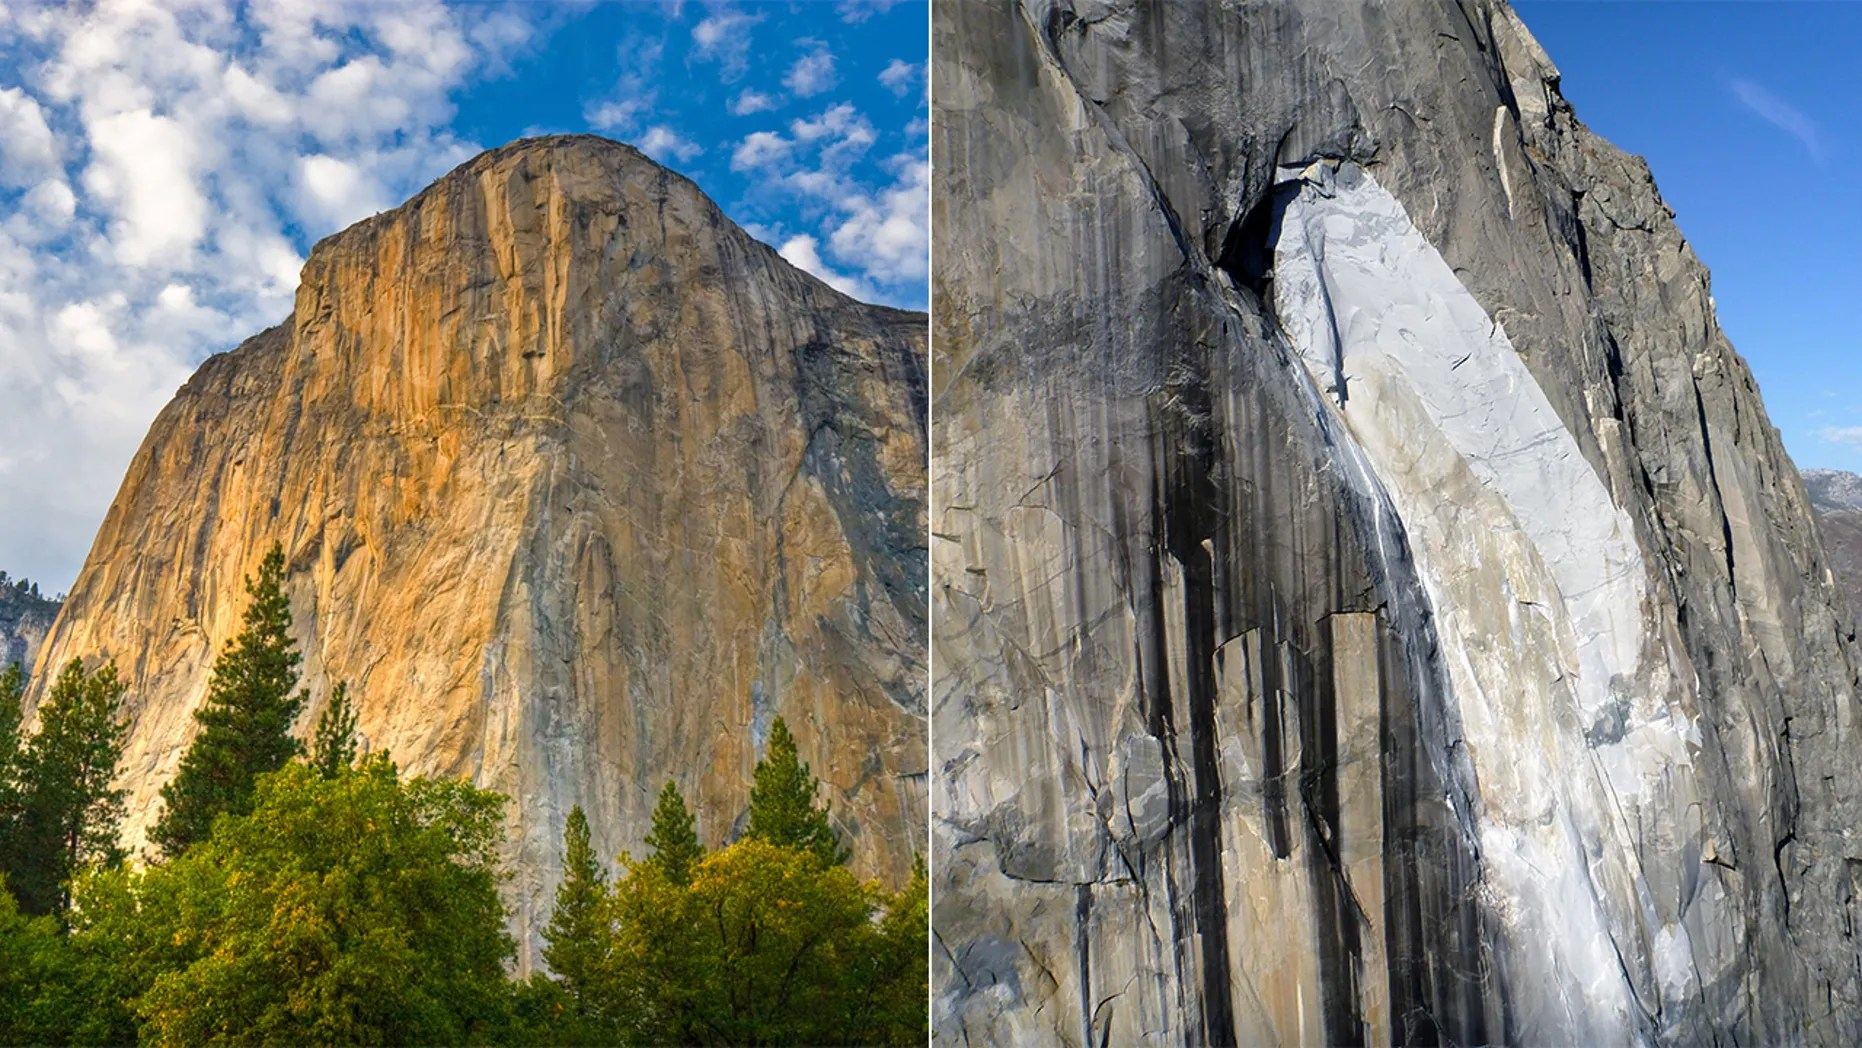 Wallpaper Falling Off Wall Climber Who Died In Rock Fall At Yosemite Was Celebrating